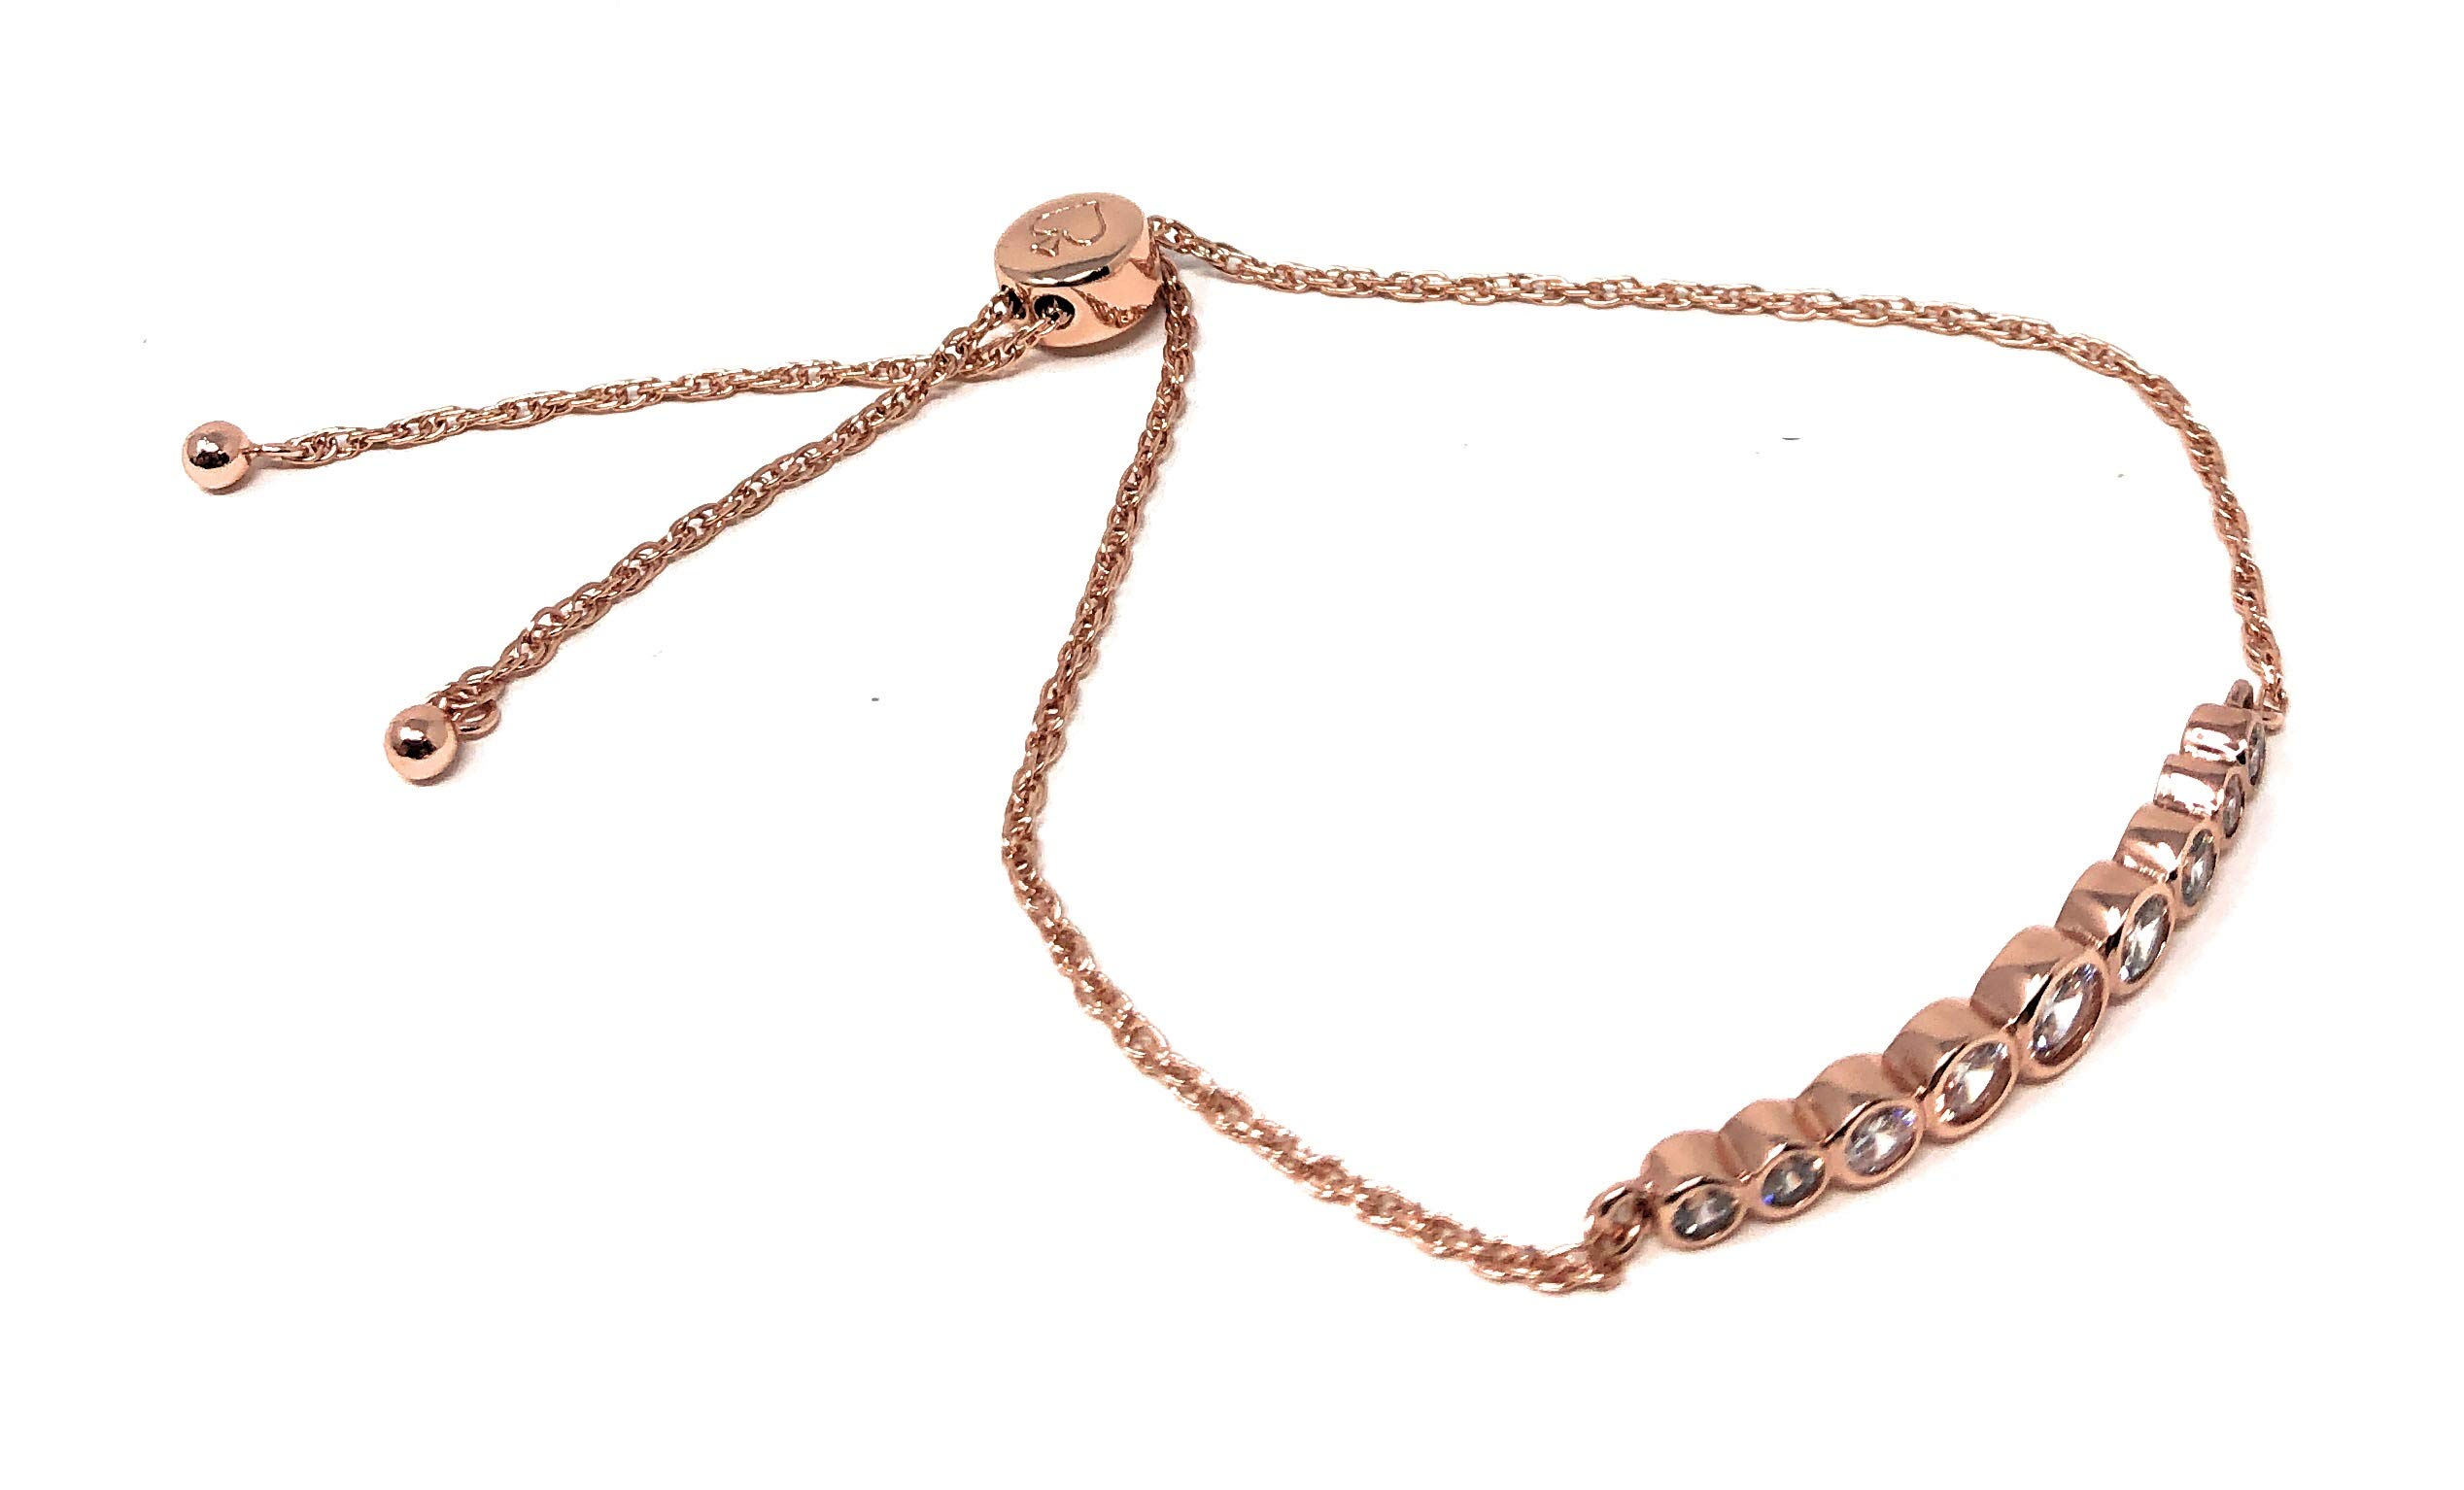 Kate Spade Circle of Love Rose Gold Plated Adjustable Chain Bracelet by Kate Spade New York